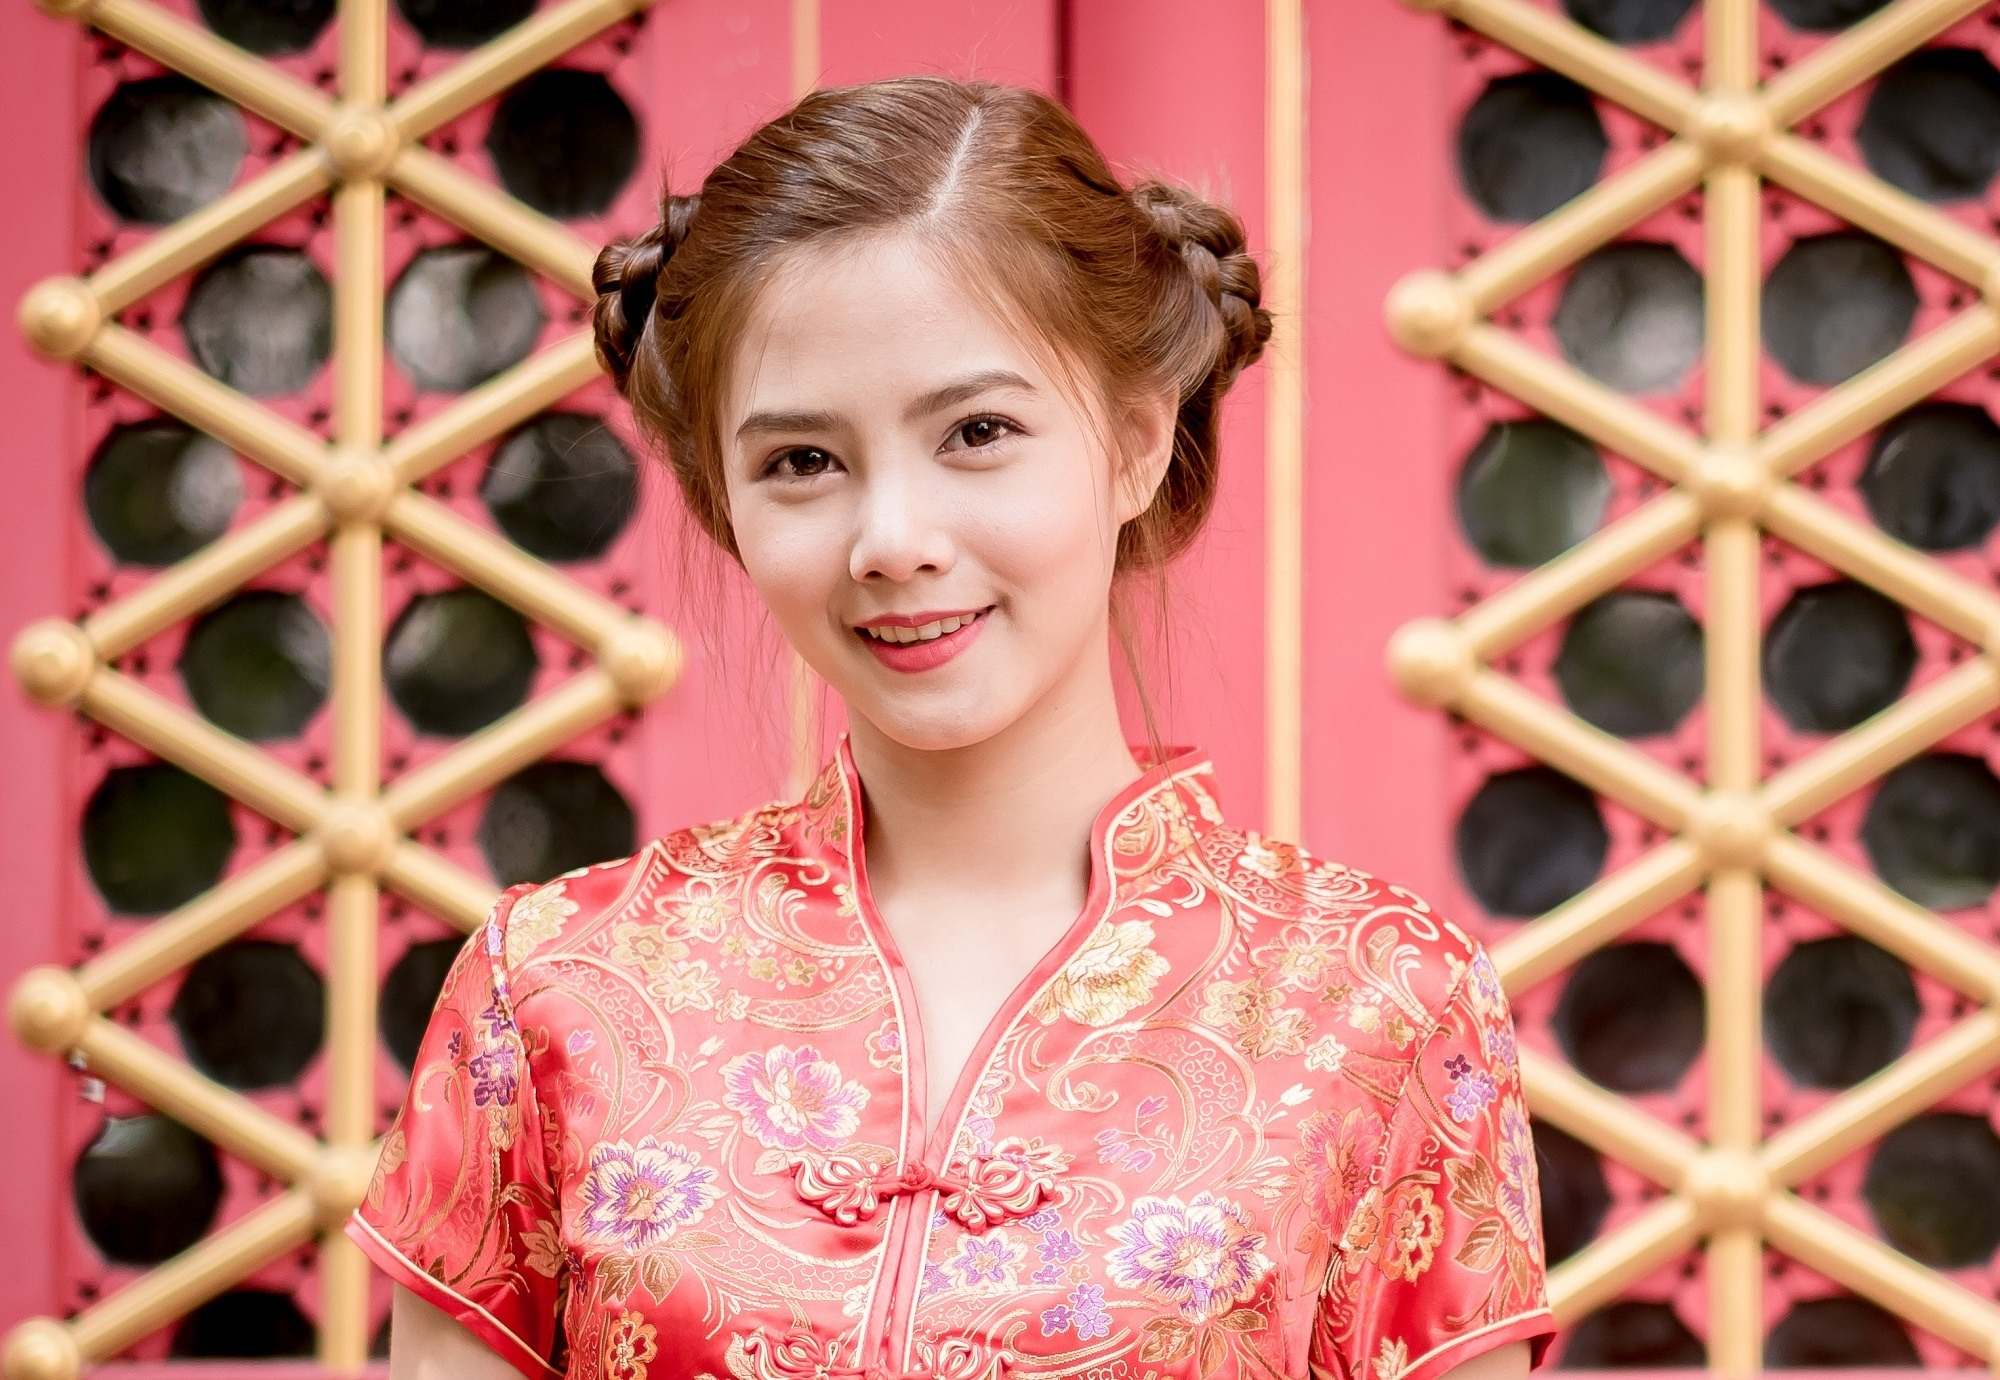 Chinese hairstyles: Asian woman in a red dress with hair in double buns against a Chinese temple door